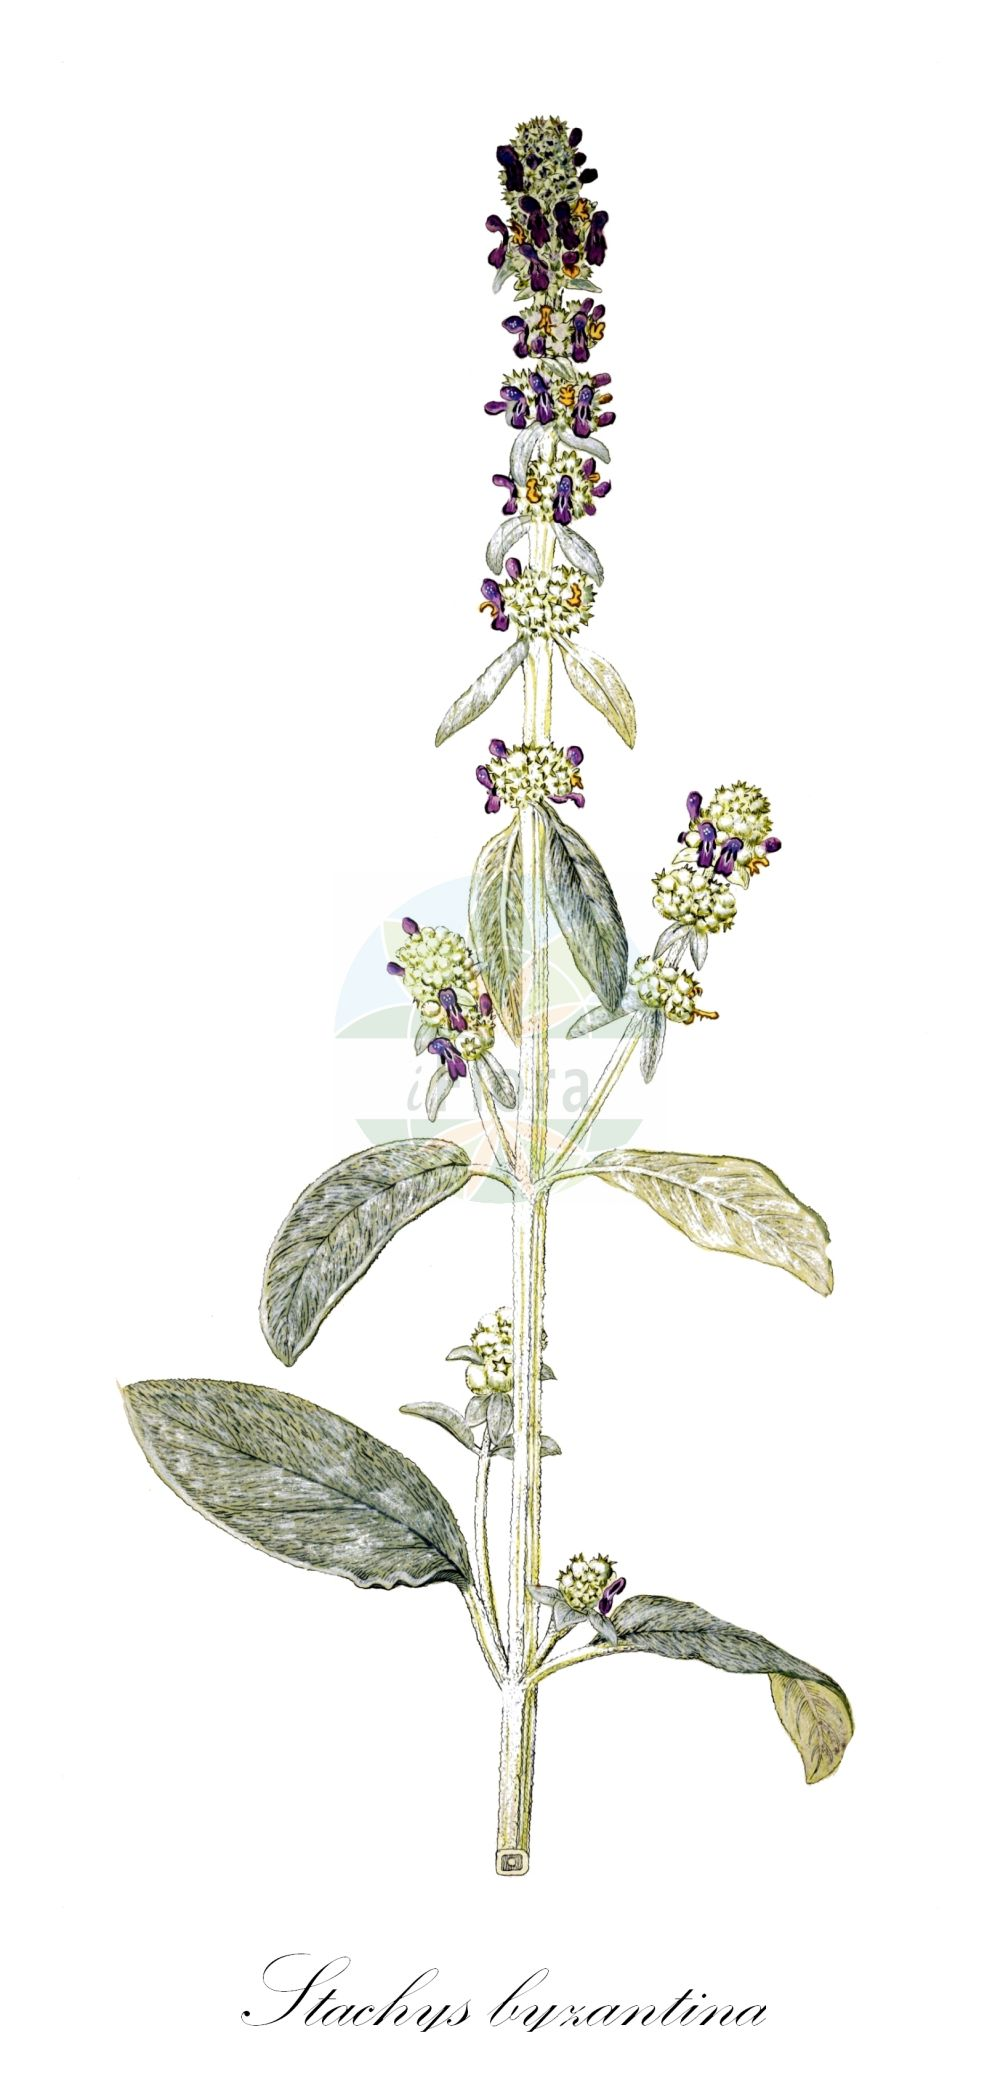 Historische Abbildung von Stachys byzantina. Das Bild zeigt Blatt, Bluete, Frucht und Same. ---- Historical Drawing of Stachys byzantina.The image is showing leaf, flower, fruit and seed.(Stachys byzantina,Eriostomum lanatum,Stachys lanata,Stachys olympica,Stachys taurica,Stachys,Ziest,Hedgenettle,Lamiaceae,Lippenbluetengewaechse;Lippenbluetler,Nettle family,Blatt,Bluete,Frucht,Same,leaf,flower,fruit,seed,von Jacquin (1727-1817))